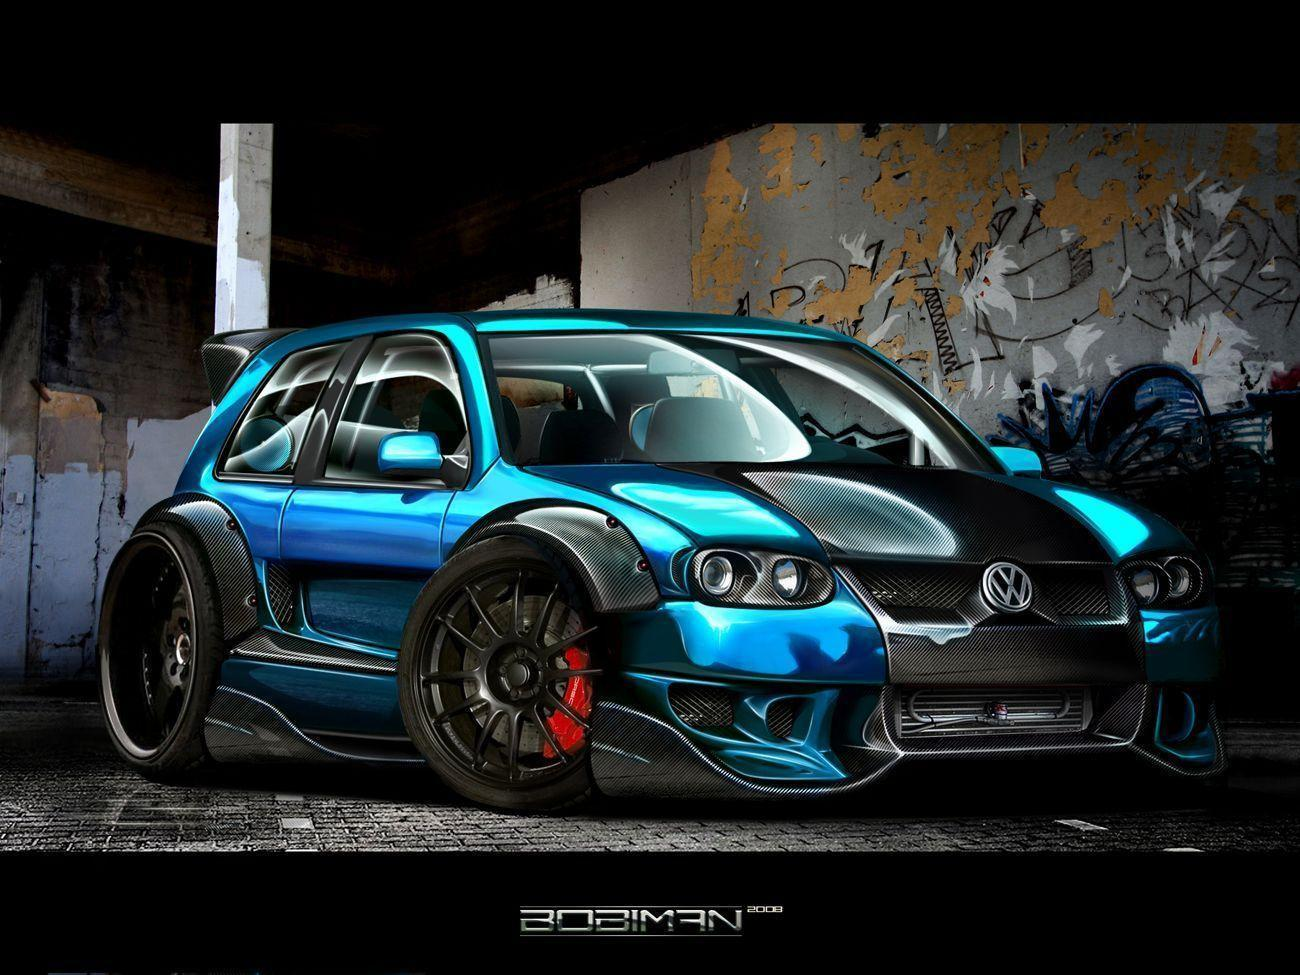 vehicles for super fast cool cars wallpaper - Super Fast Cool Cars